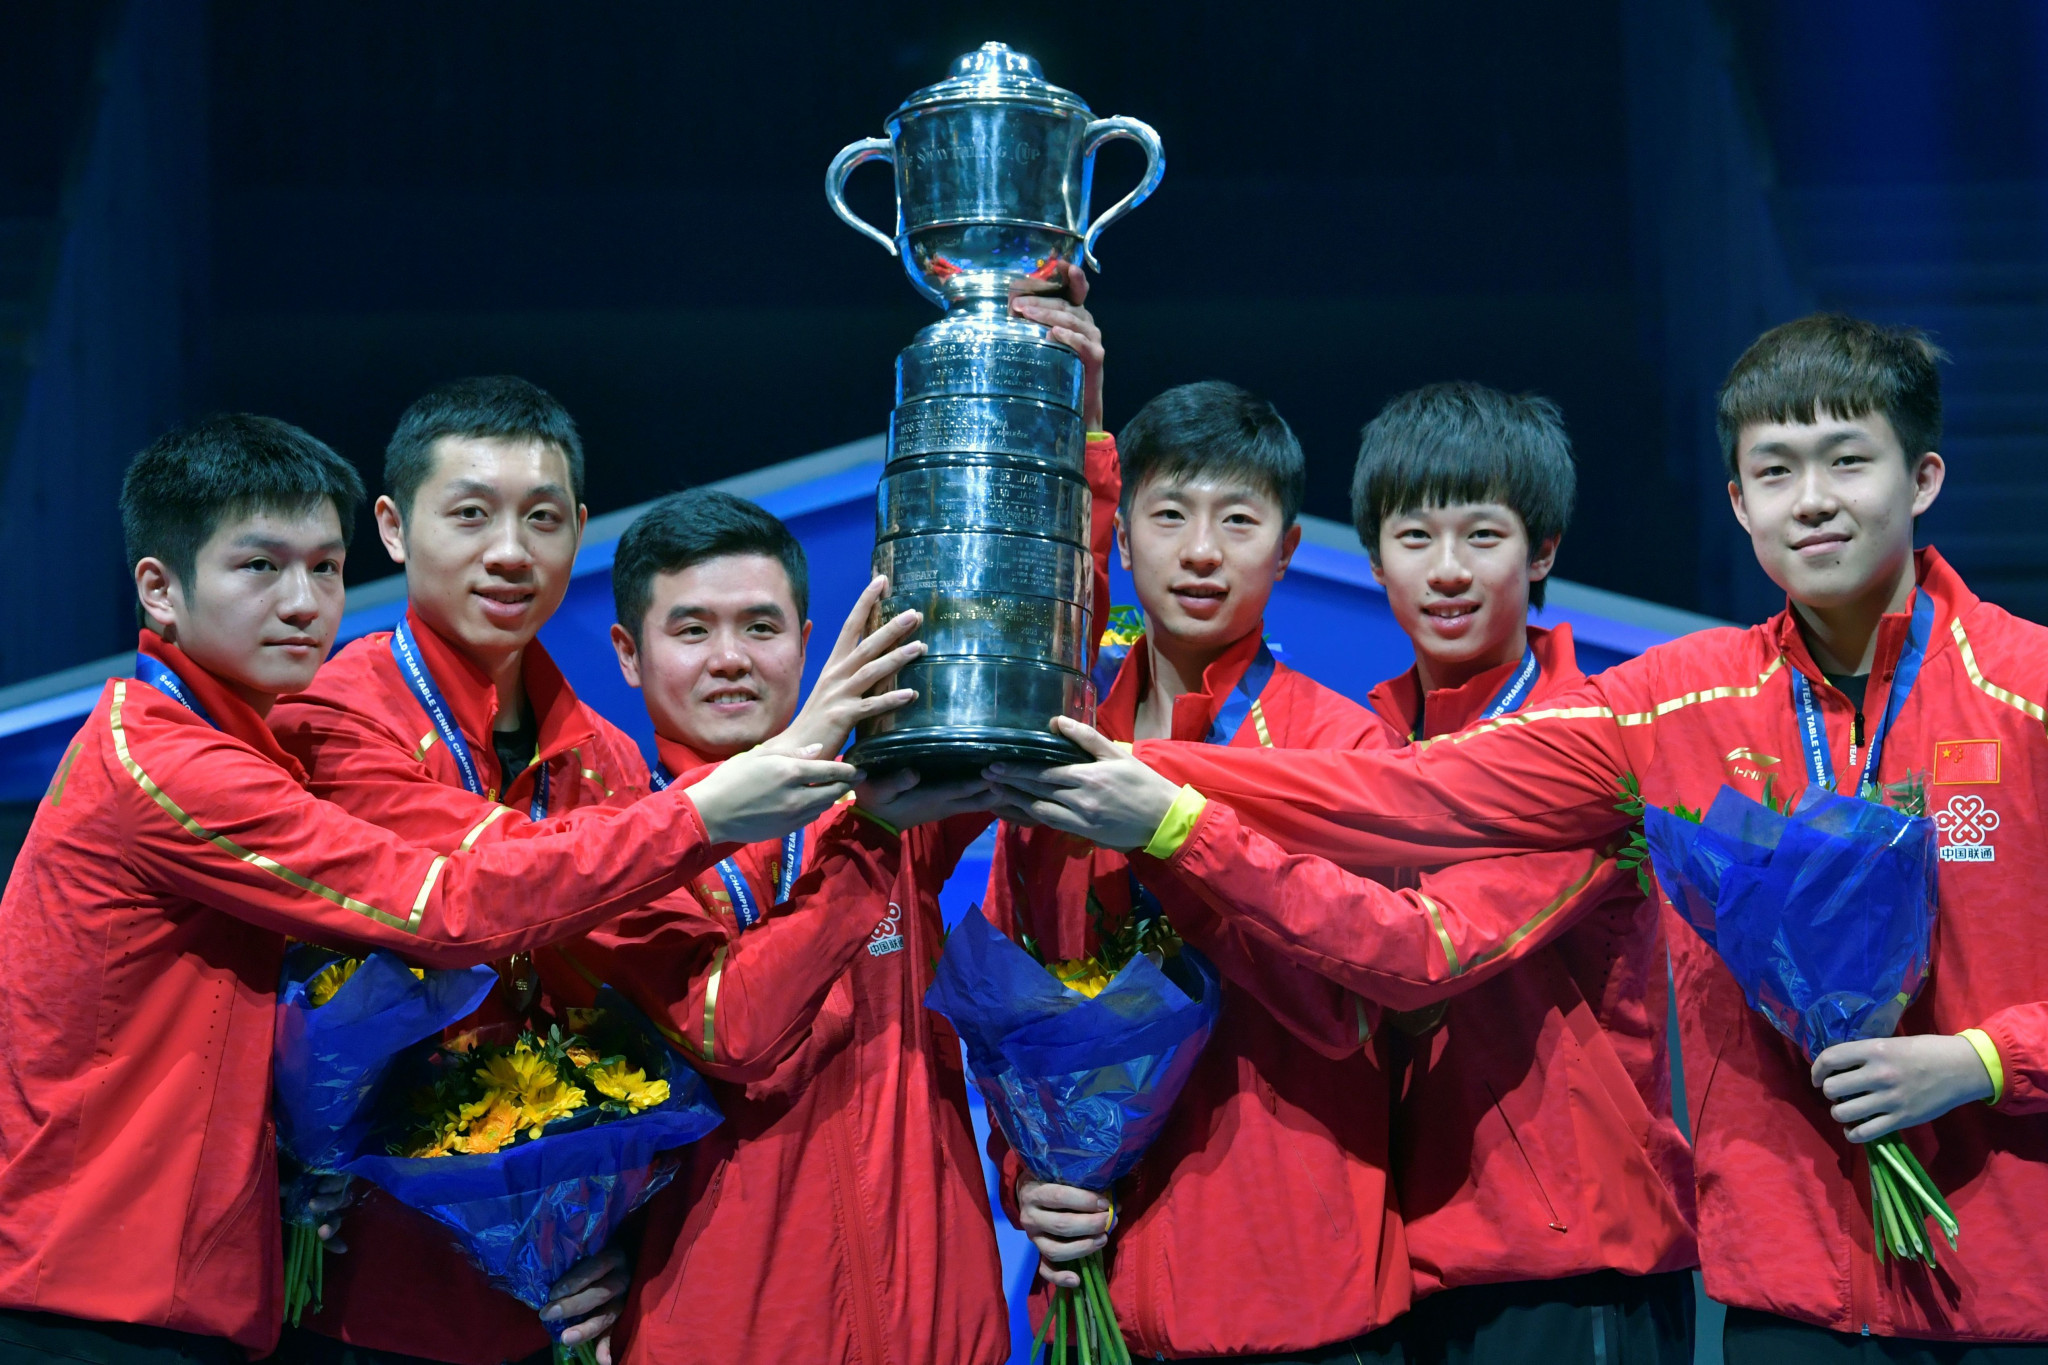 ITTF revealed the World Team Table Tennis Championships in Busan will definitely happen, even if it is postponed again ©Getty Images